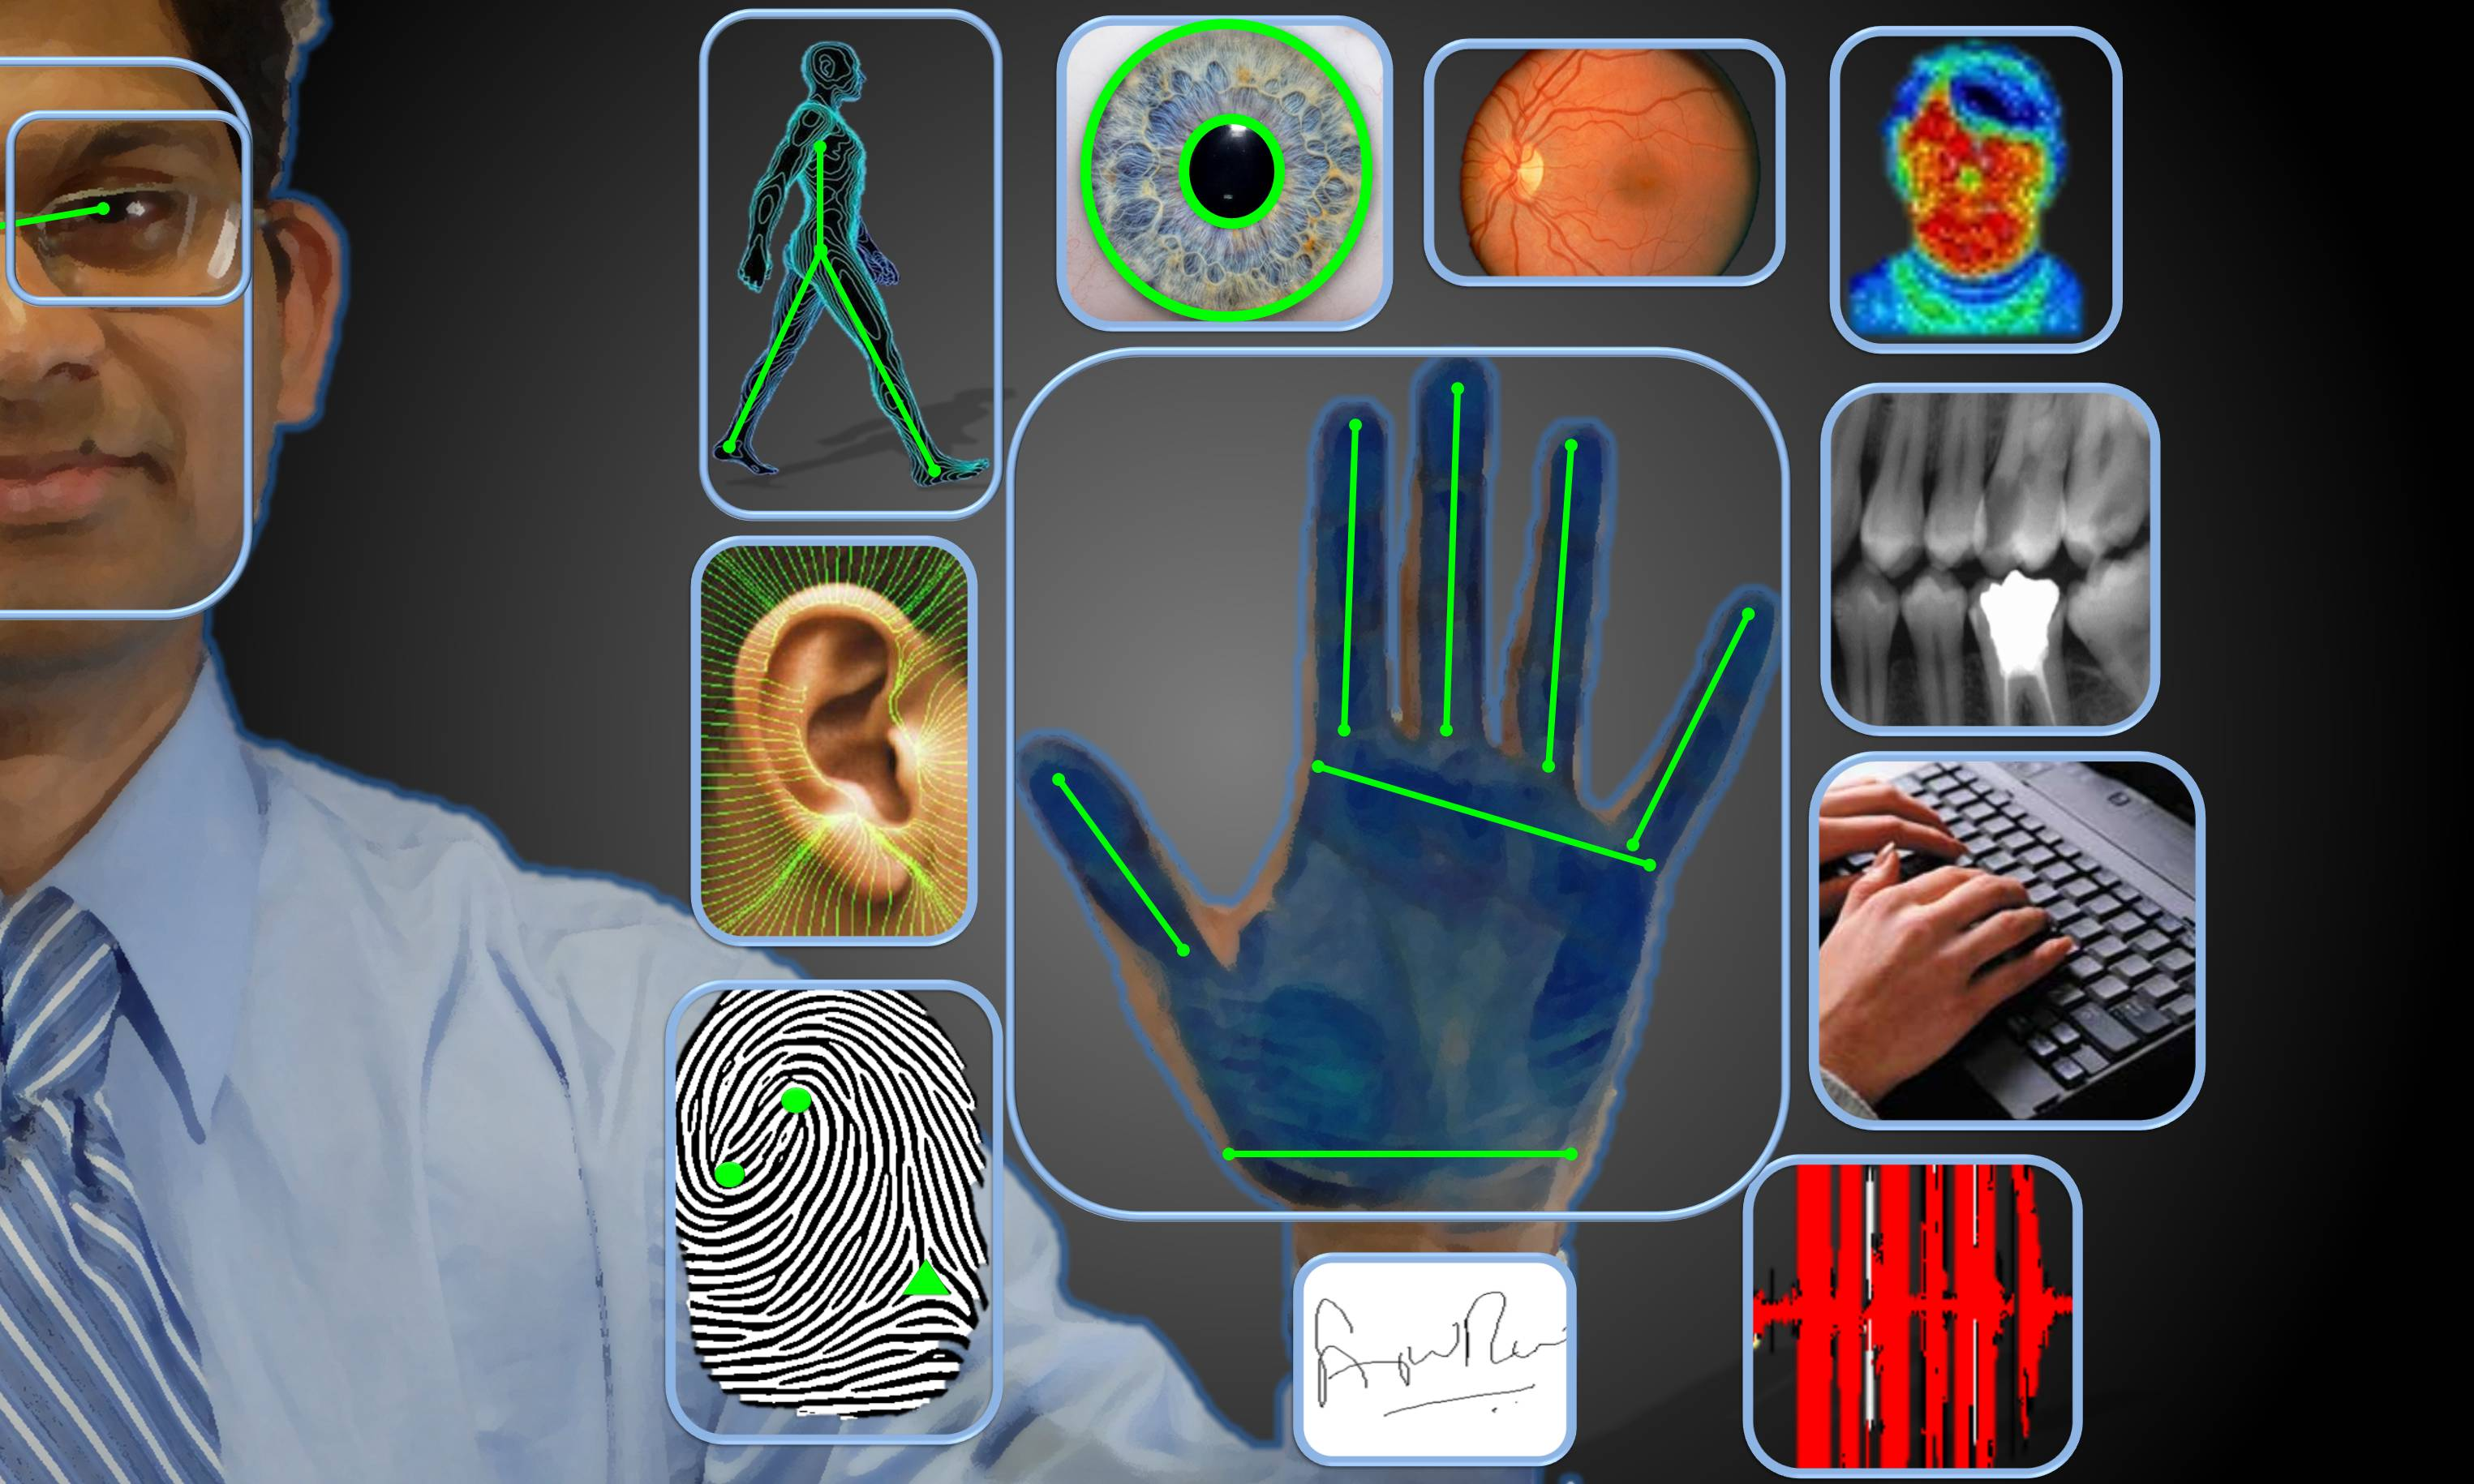 Multimodal biometric systems use more than one biometric method to recognise the person.